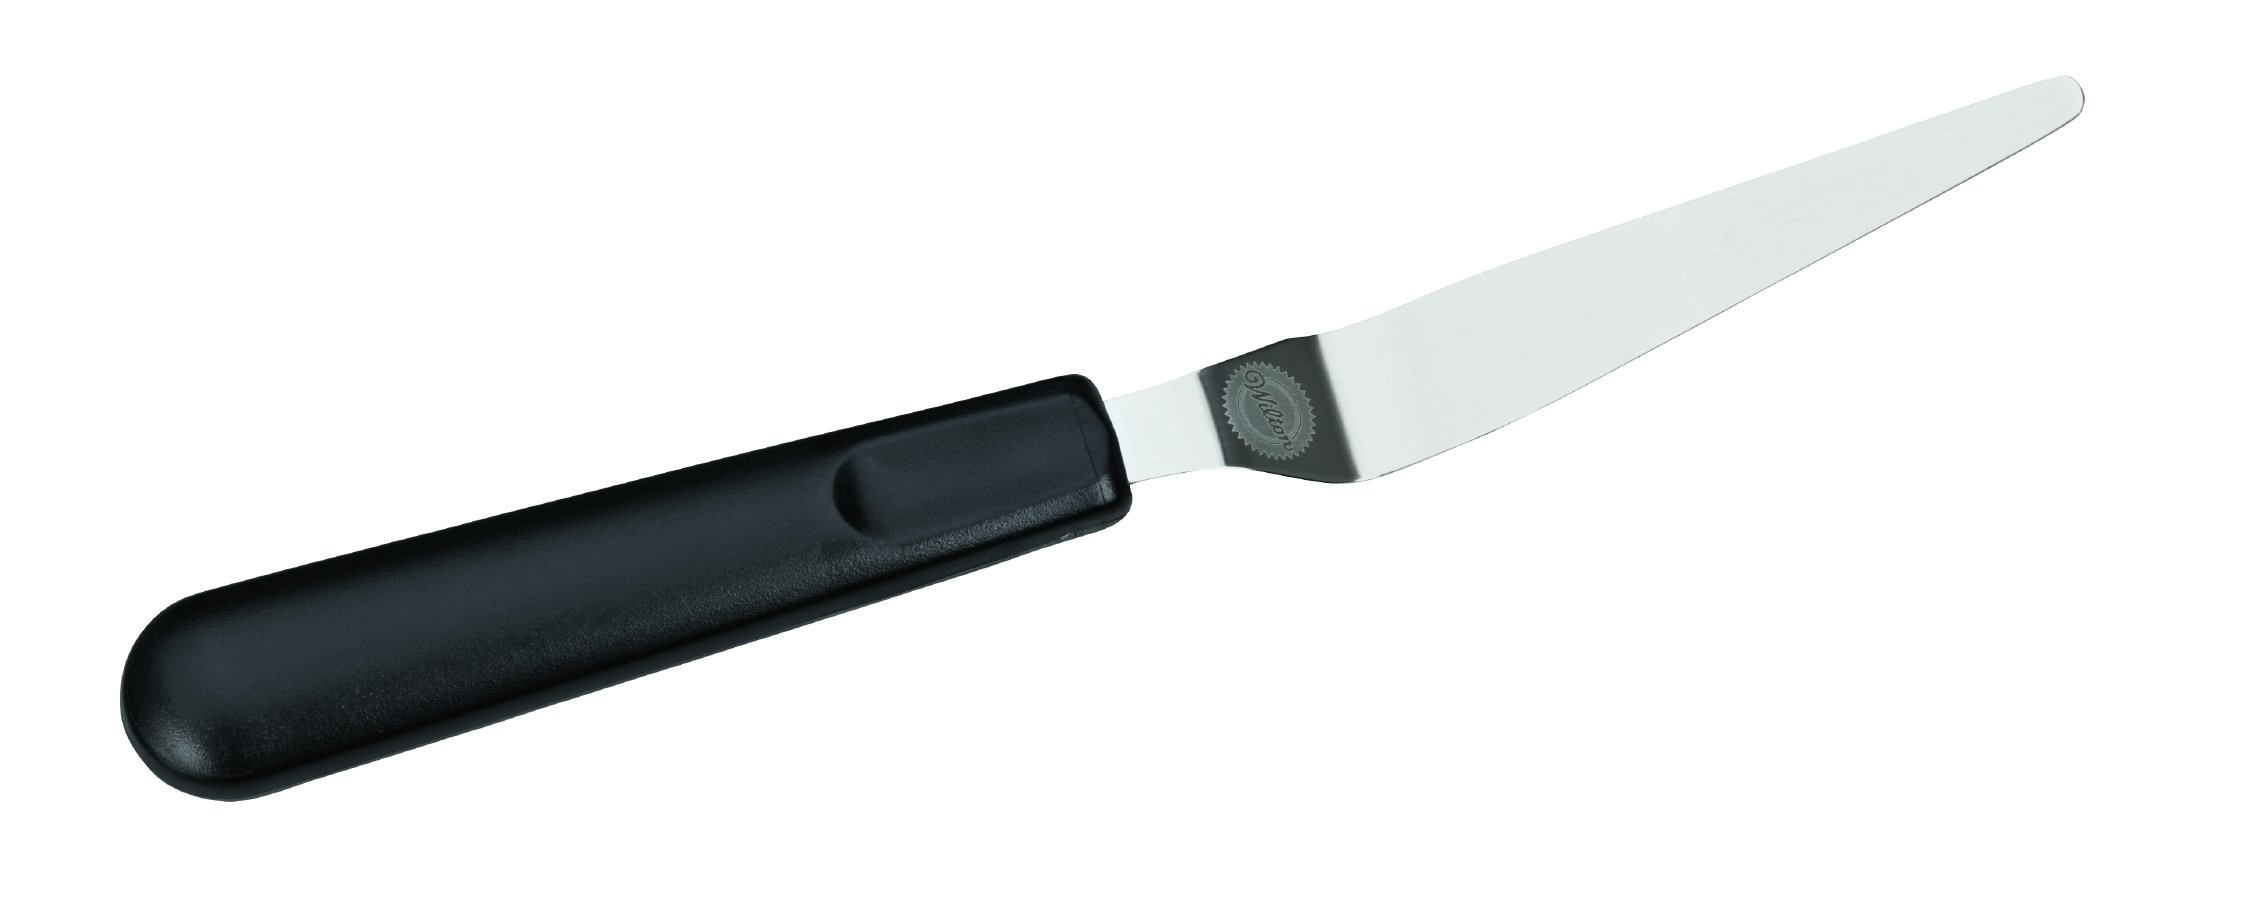 Wilton 409-7714 Tapered Icing Spatula, 9-Inch, Black